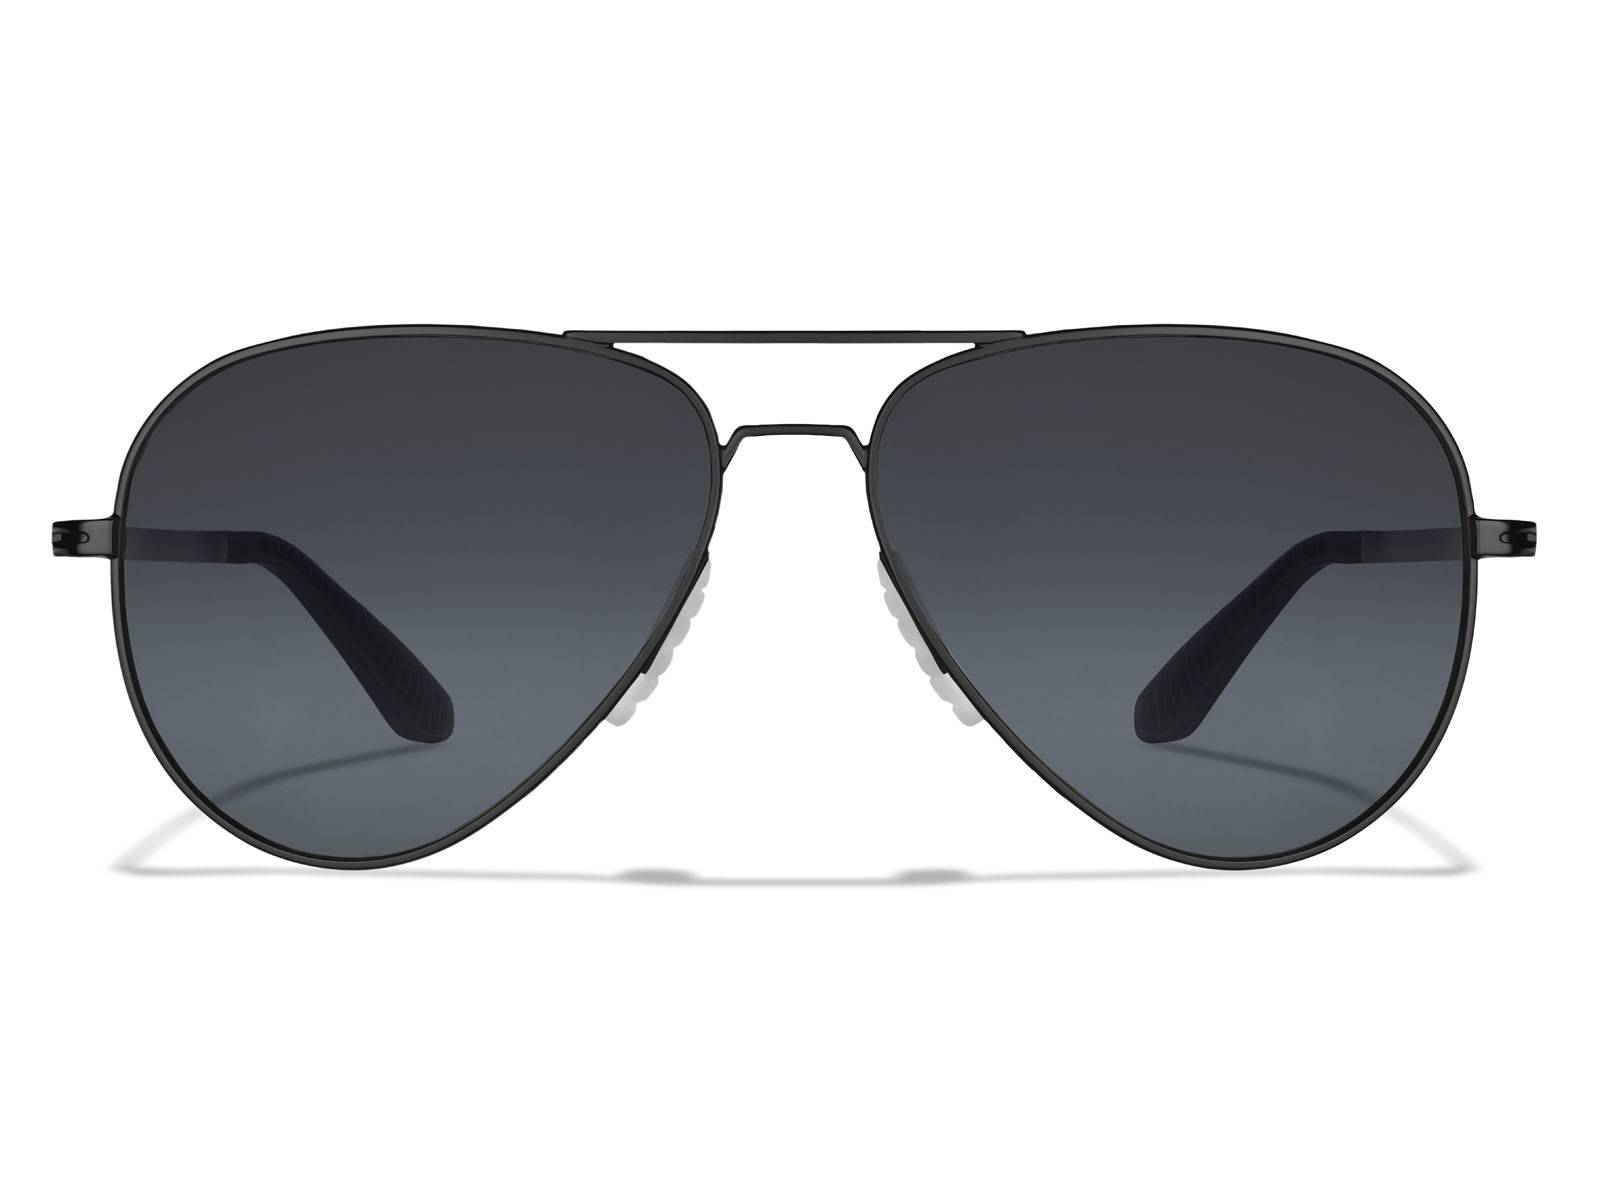 Matte Black/Black Photochromic Carbon